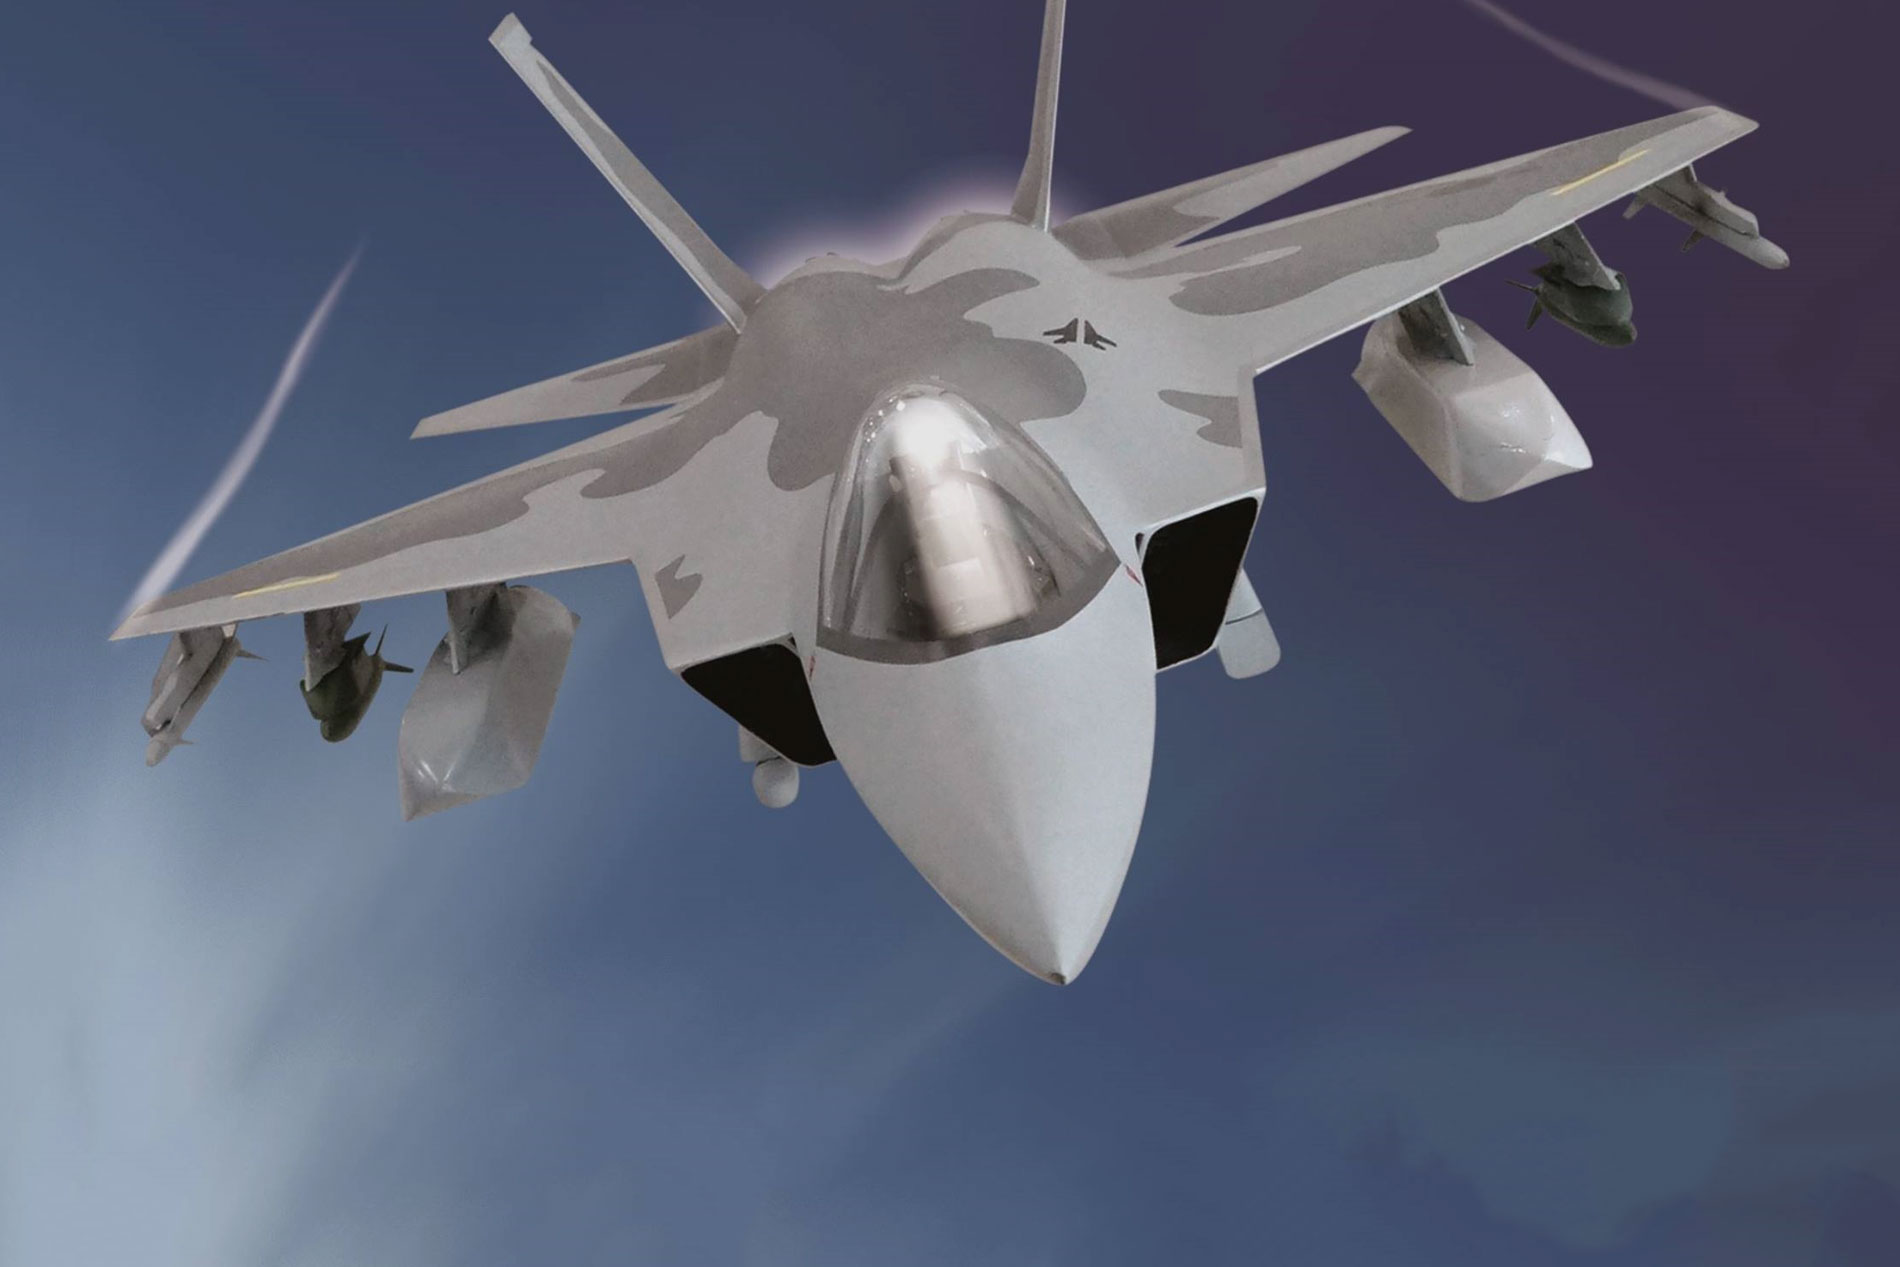 Cobham-Wins-KF-X-Weapons-Carriage-&-Release-Award-from-KAI.jpg